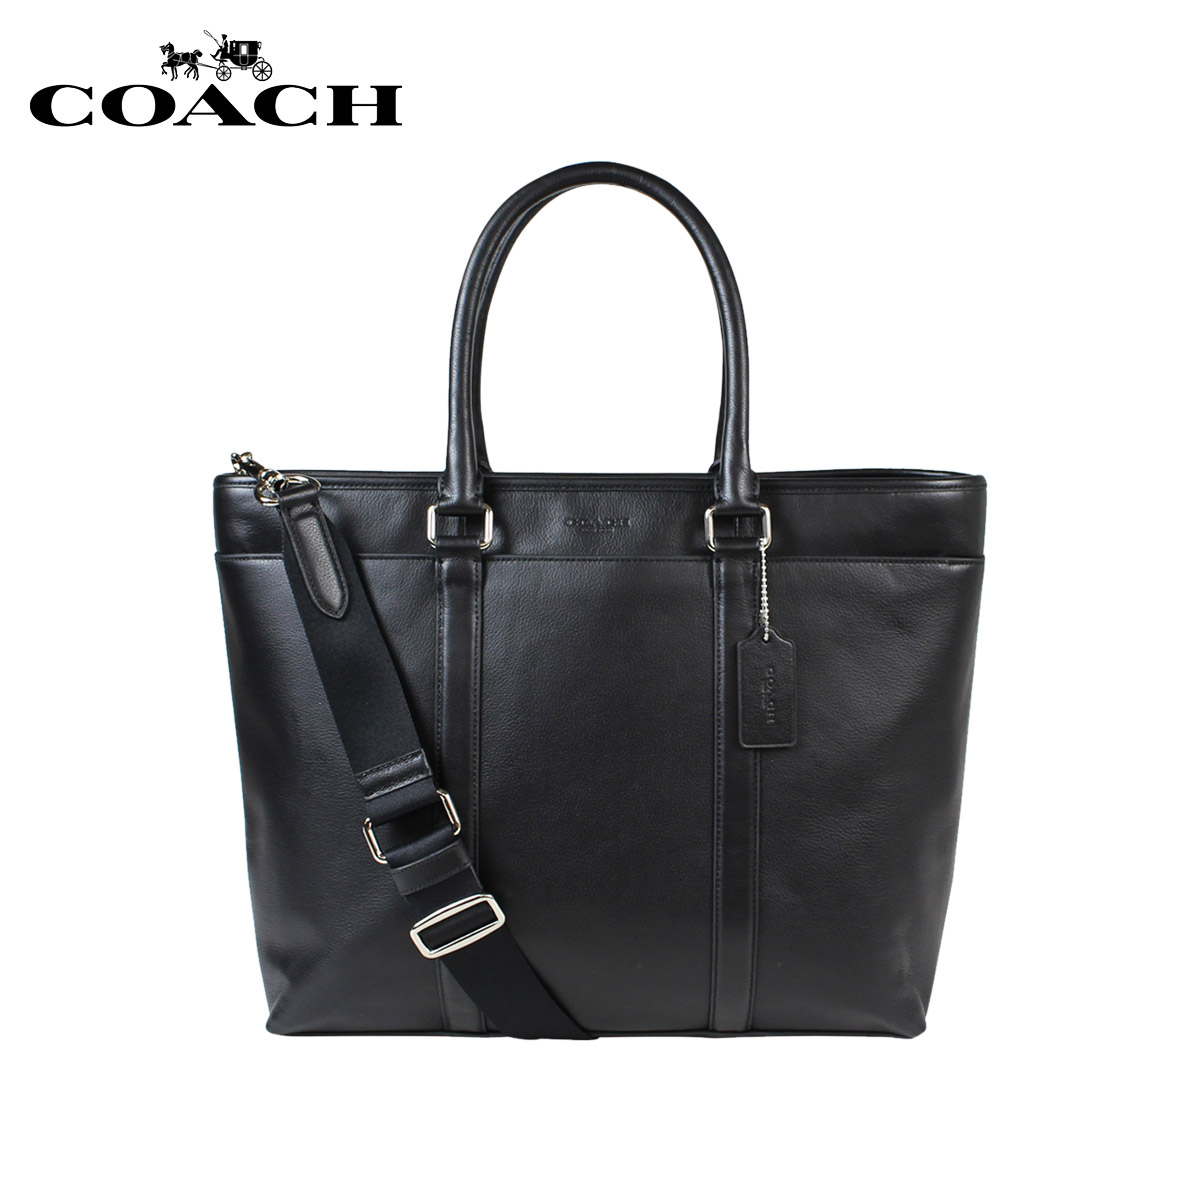 aeec2107b48b ALLSPORTS   SOLD OUT  COACH coach men bags business bag tote bag ...